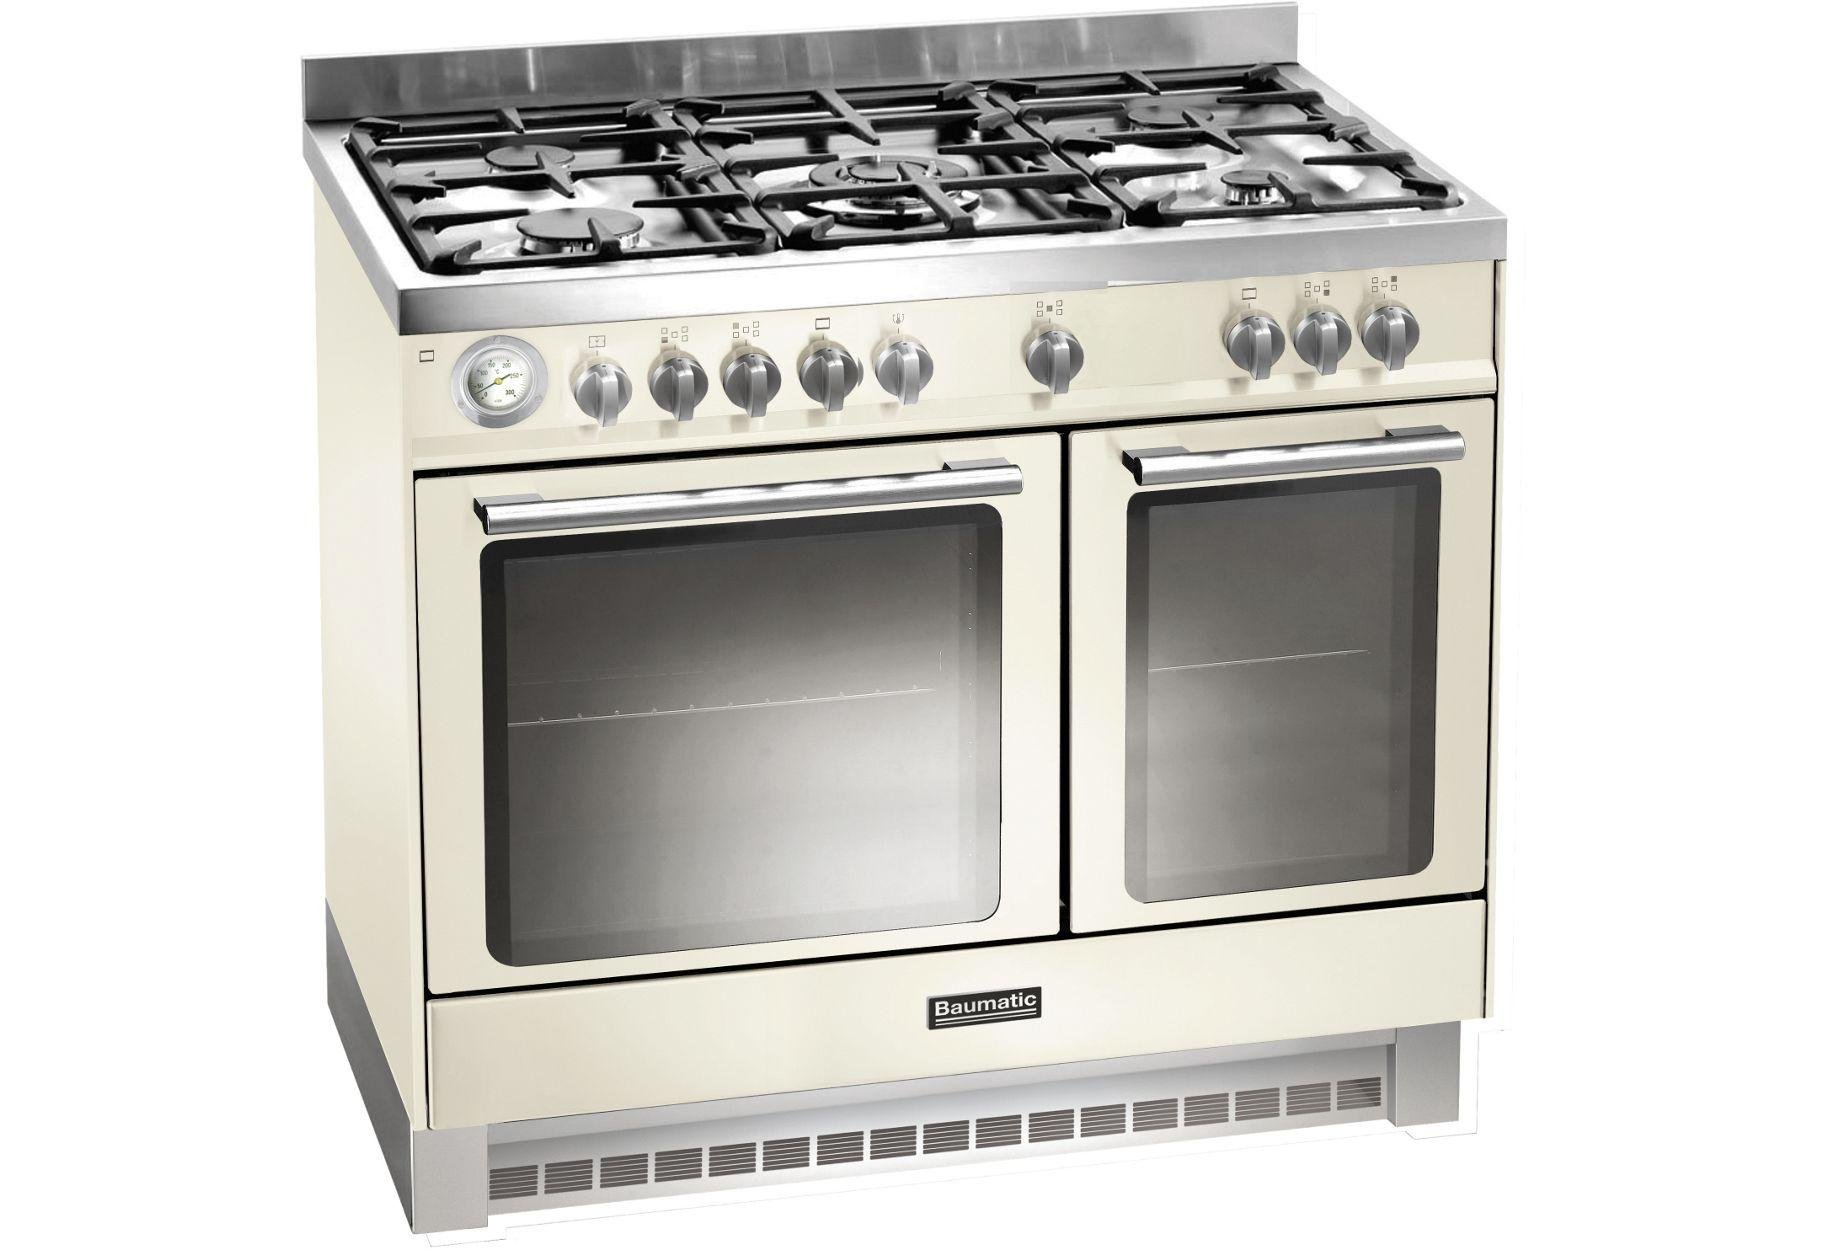 Image of Baumatic BCD925 Dual Fuel Range Cooker - Ivory.